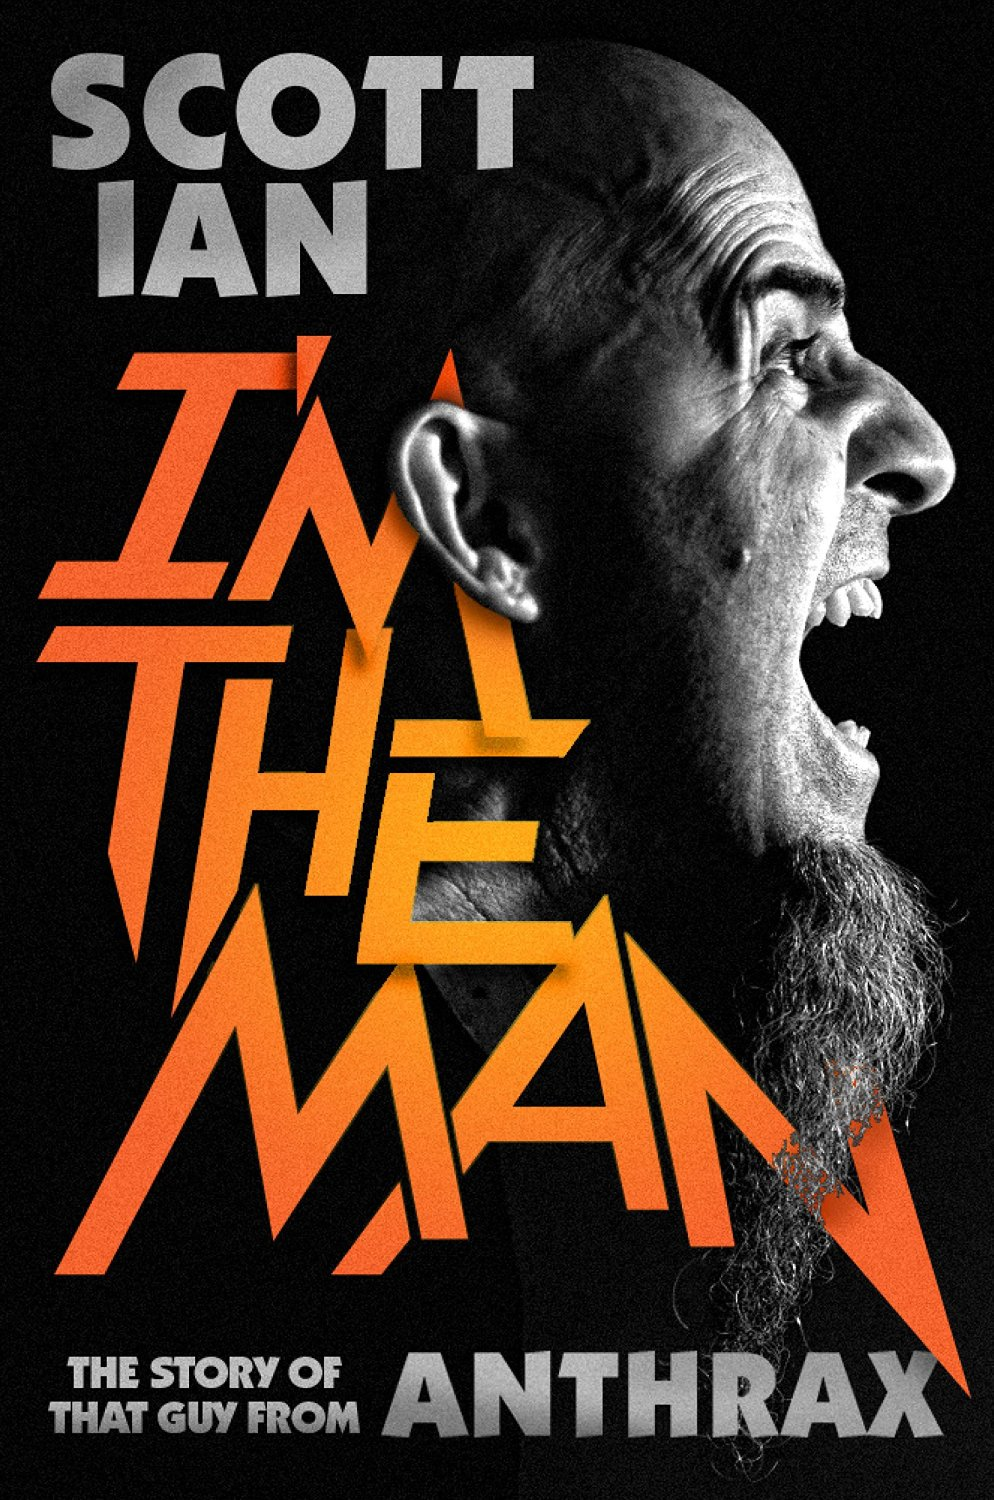 Literatura de Serie B  Im-the-man-scott-ian-autobiography